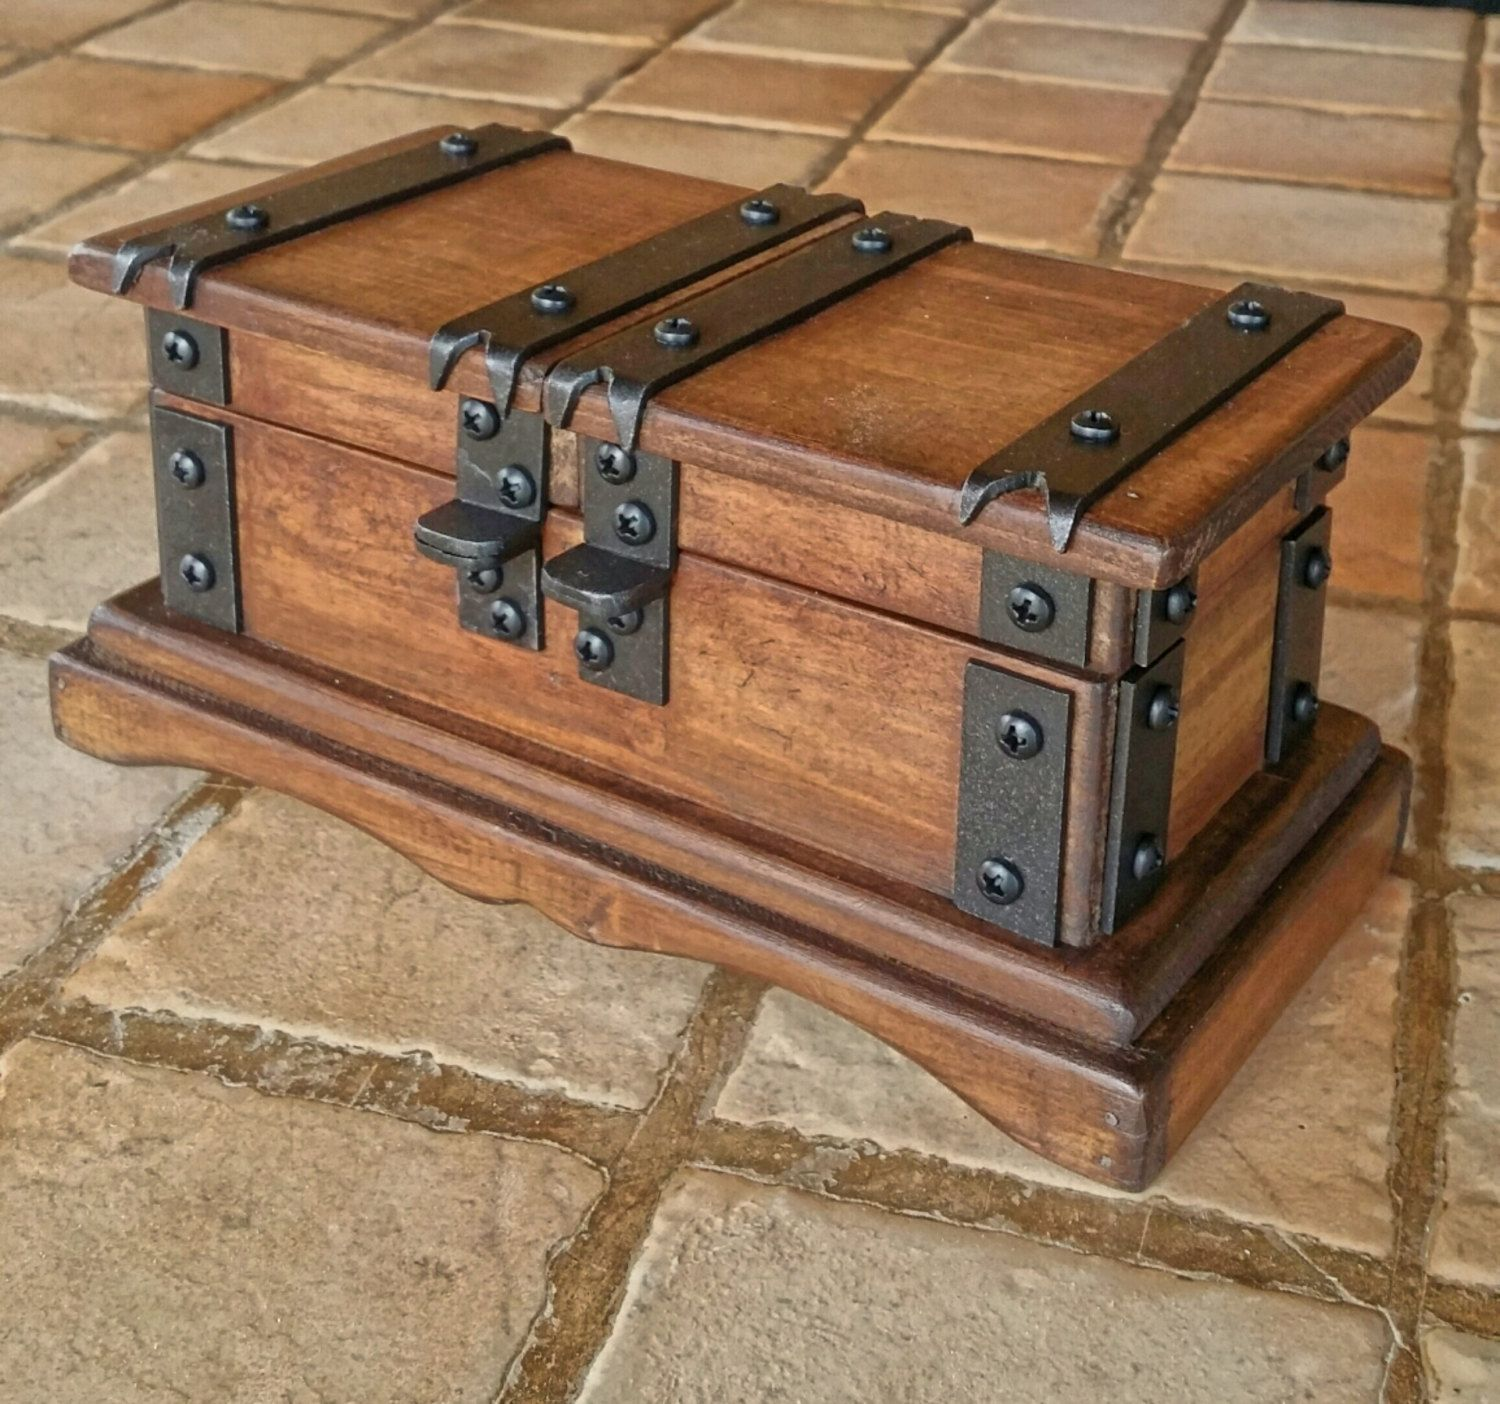 Rustic wooden jewelry box reclaimed wood treasure chest hand made in